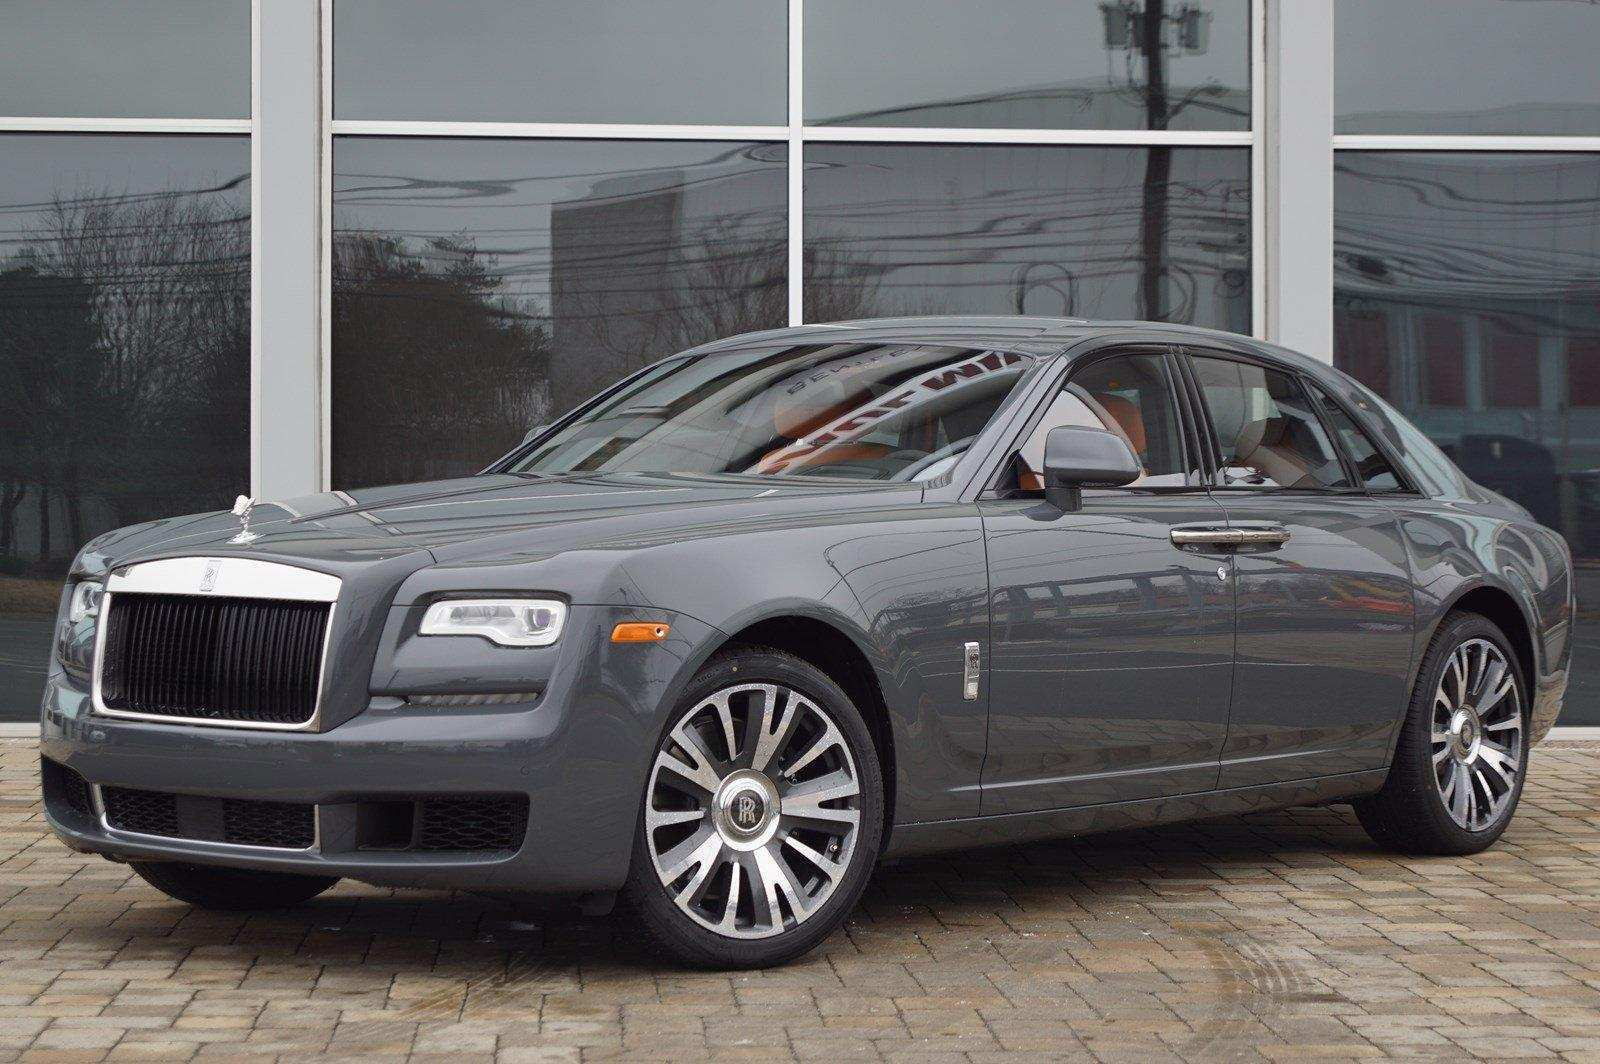 48 New 2019 Rolls Royce Phantoms Speed Test